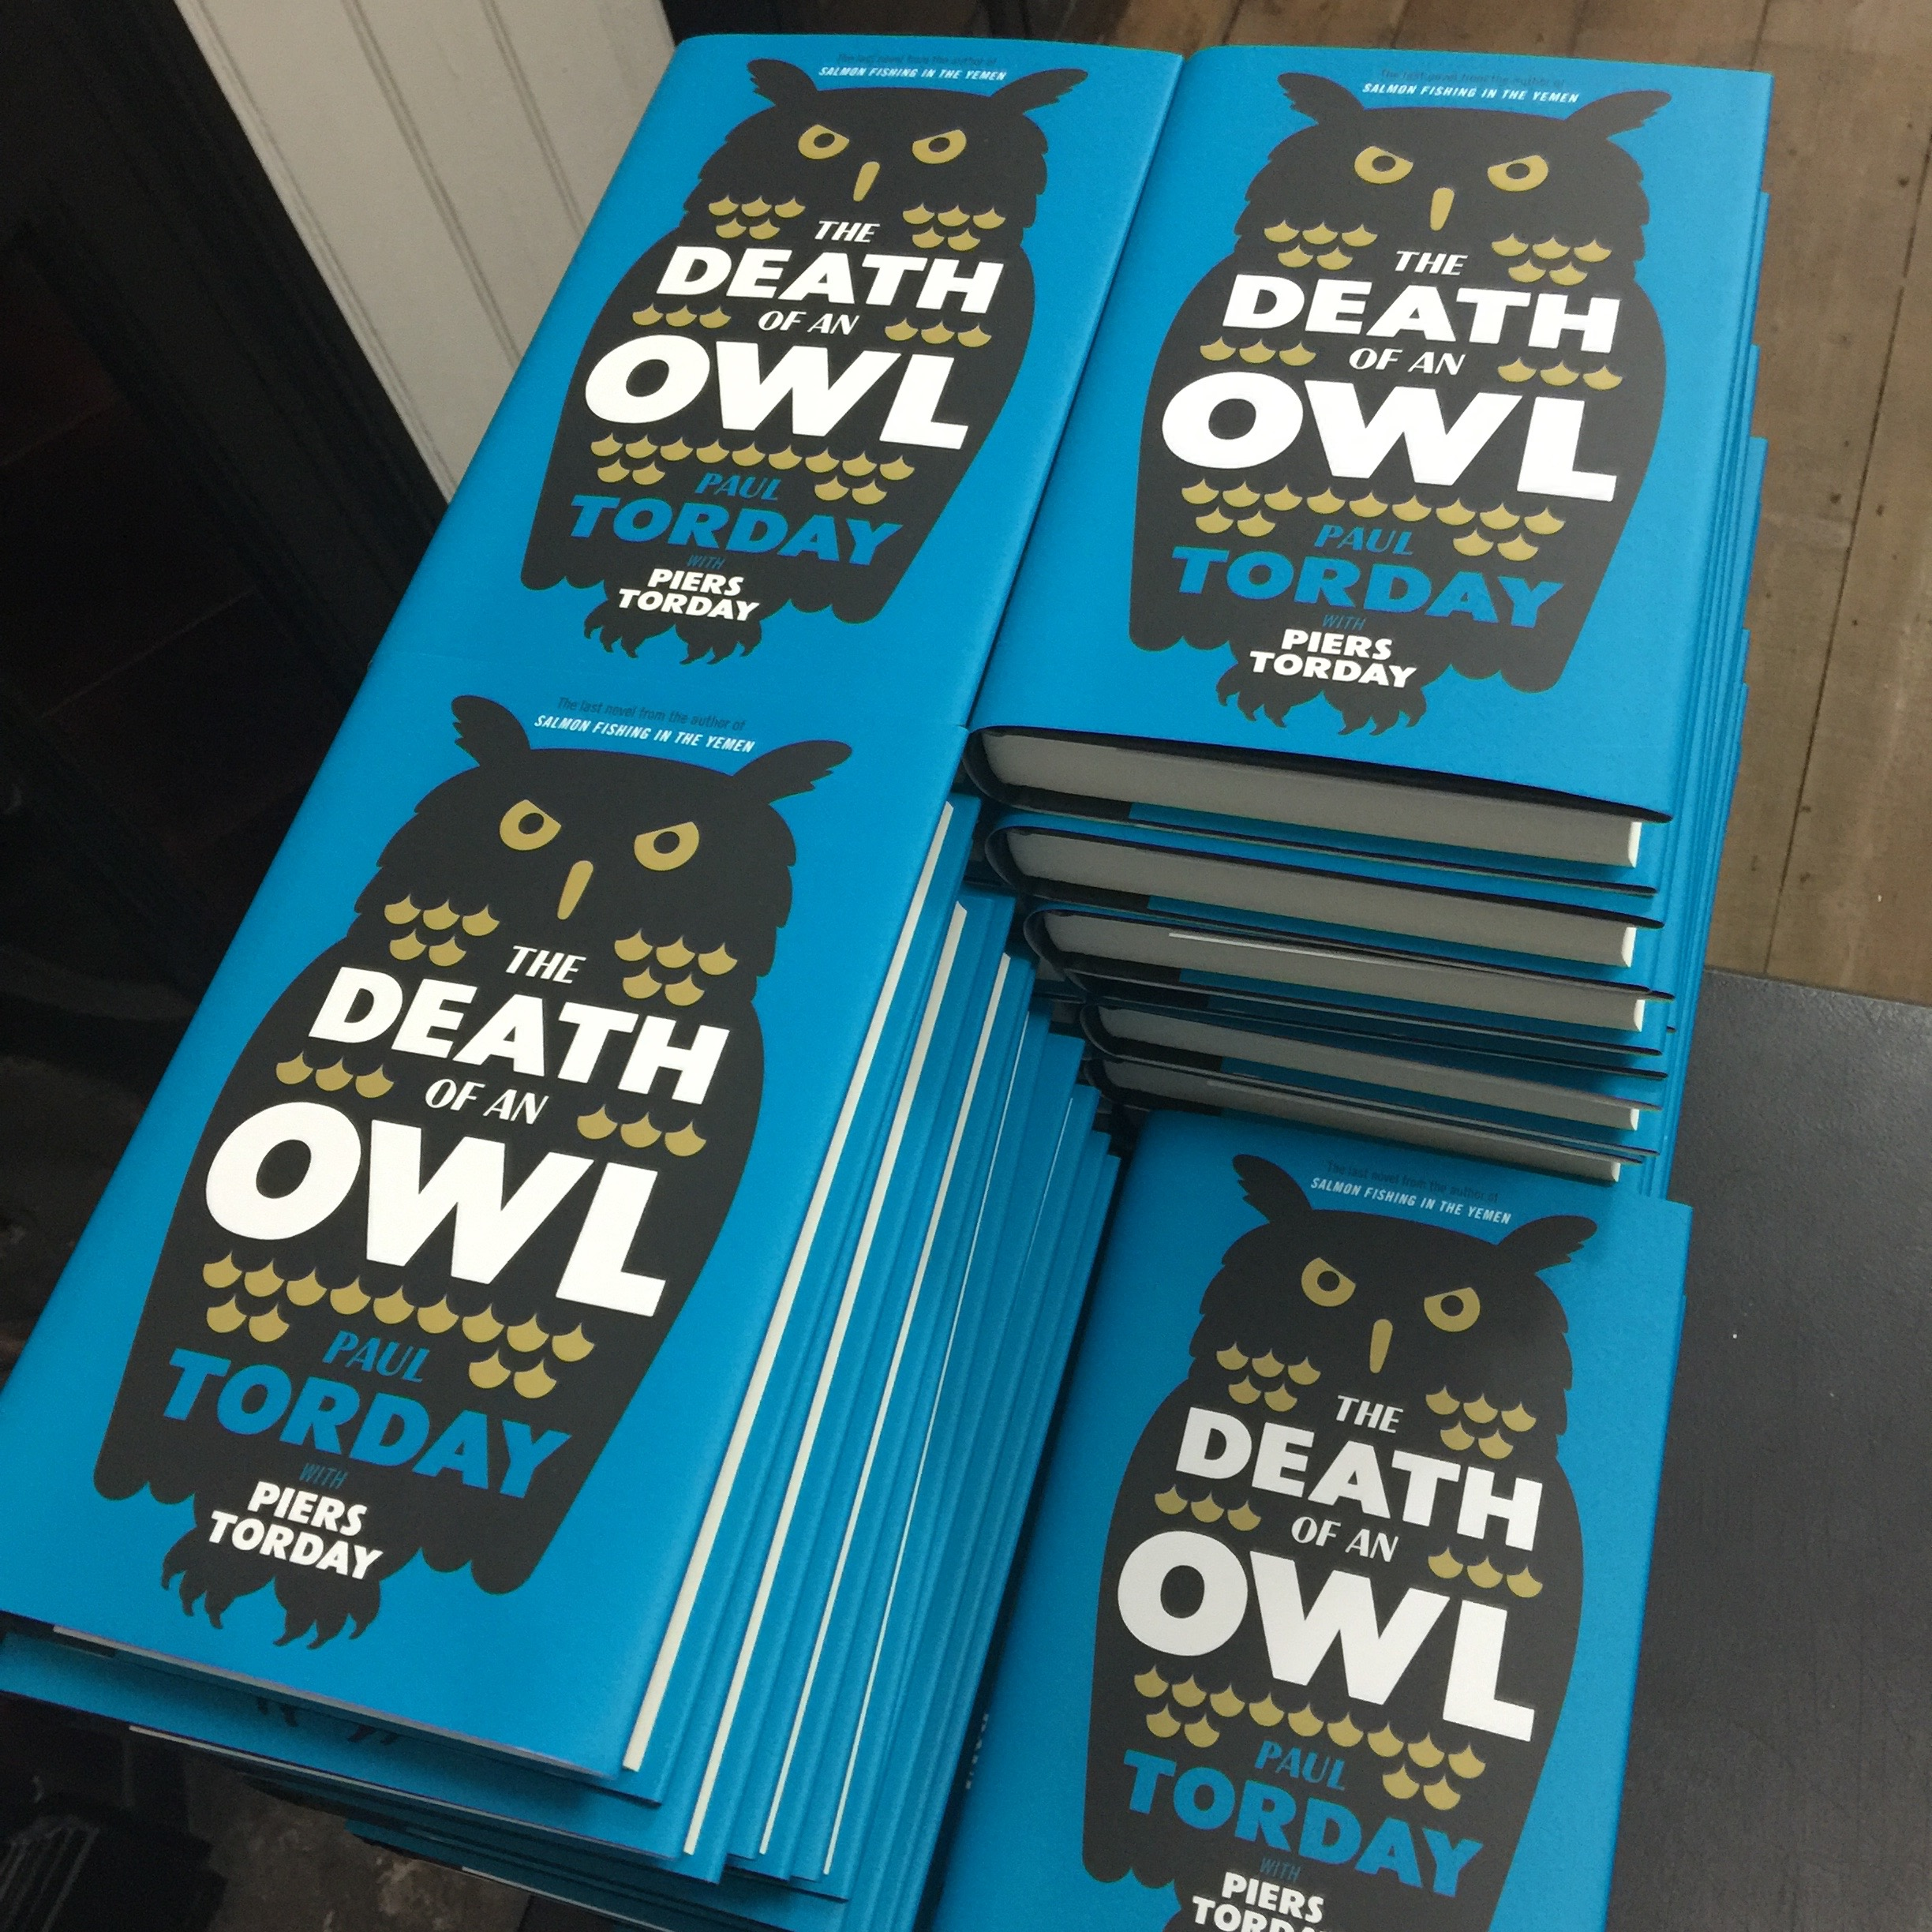 The Death of an Owl by Paul and Piers Torday hardback